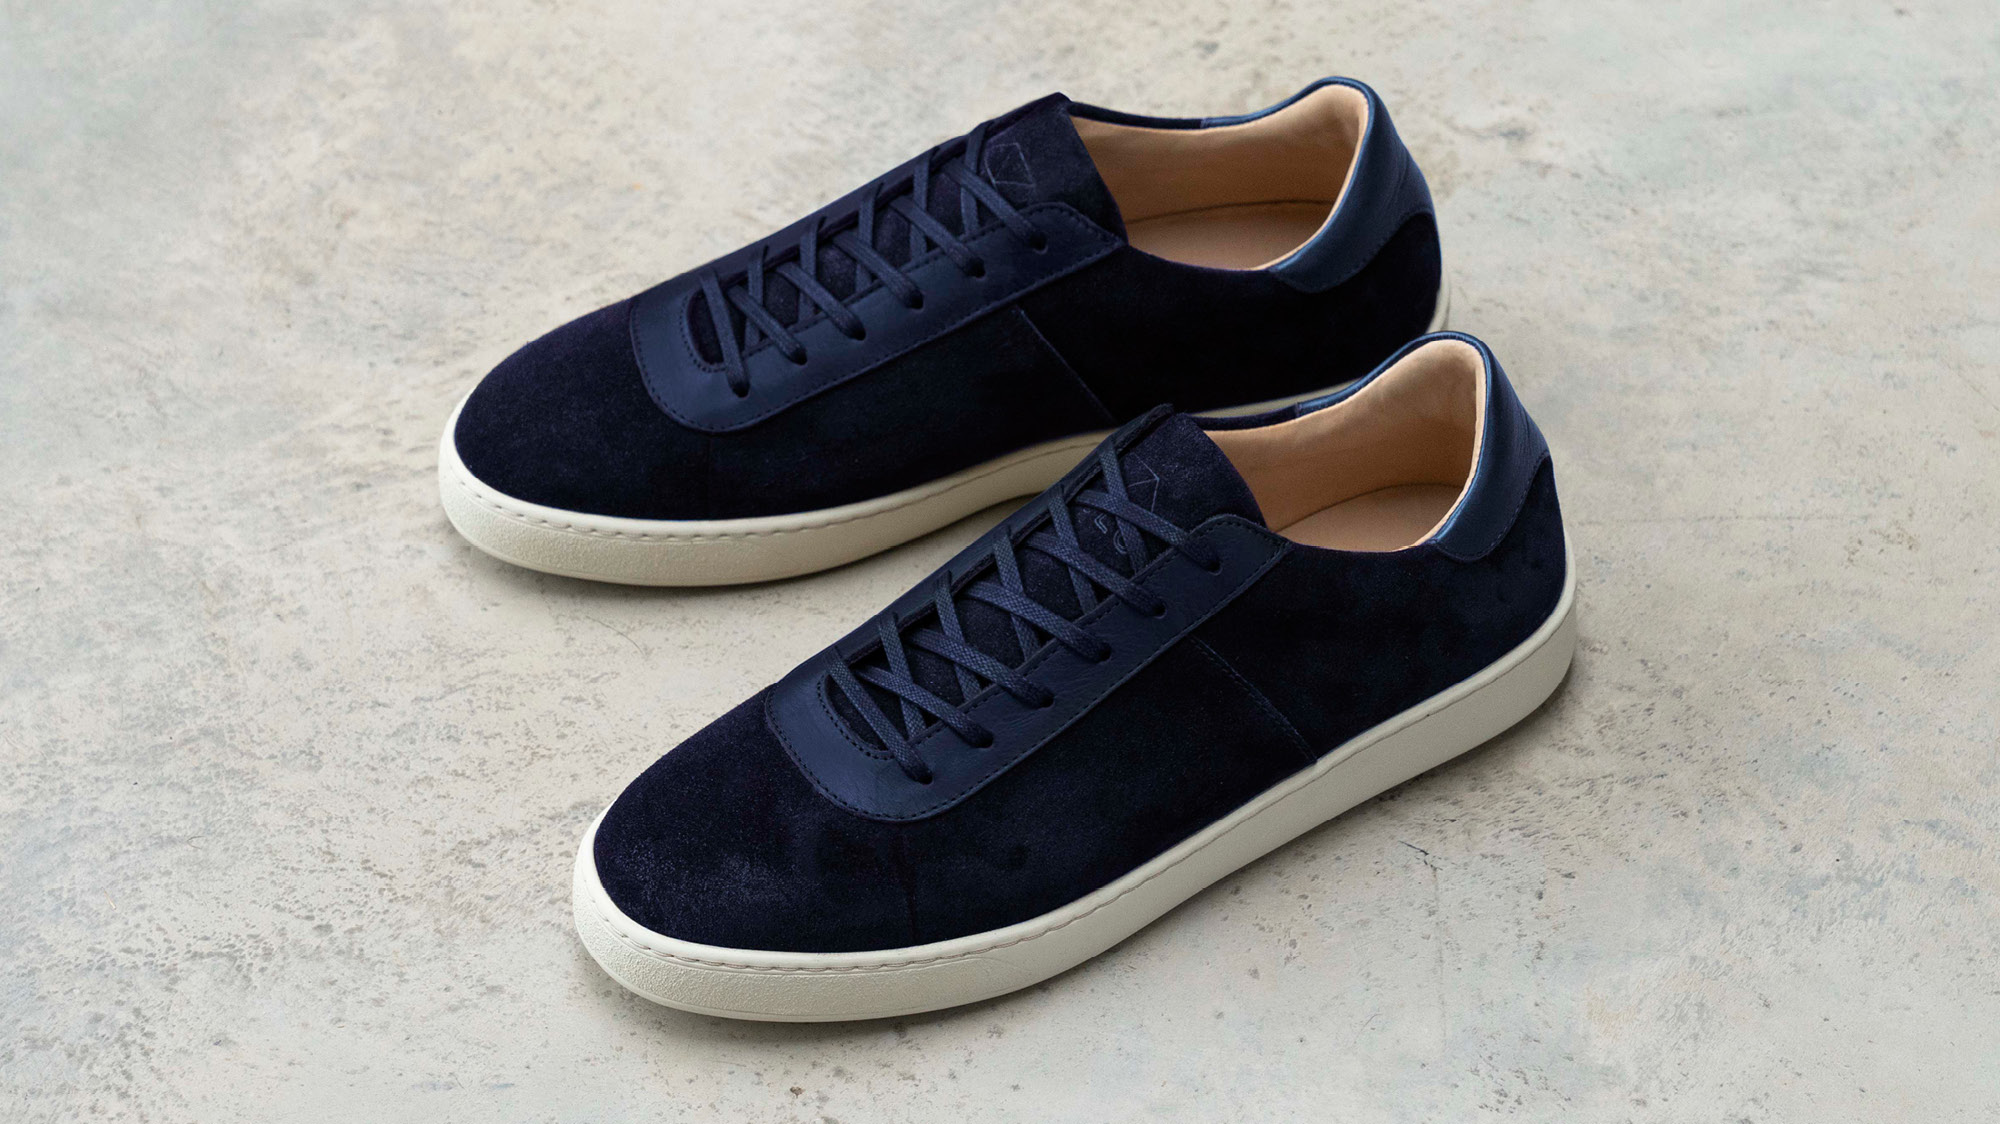 Gifts for Him - Mens Shoes Modern Sneakers